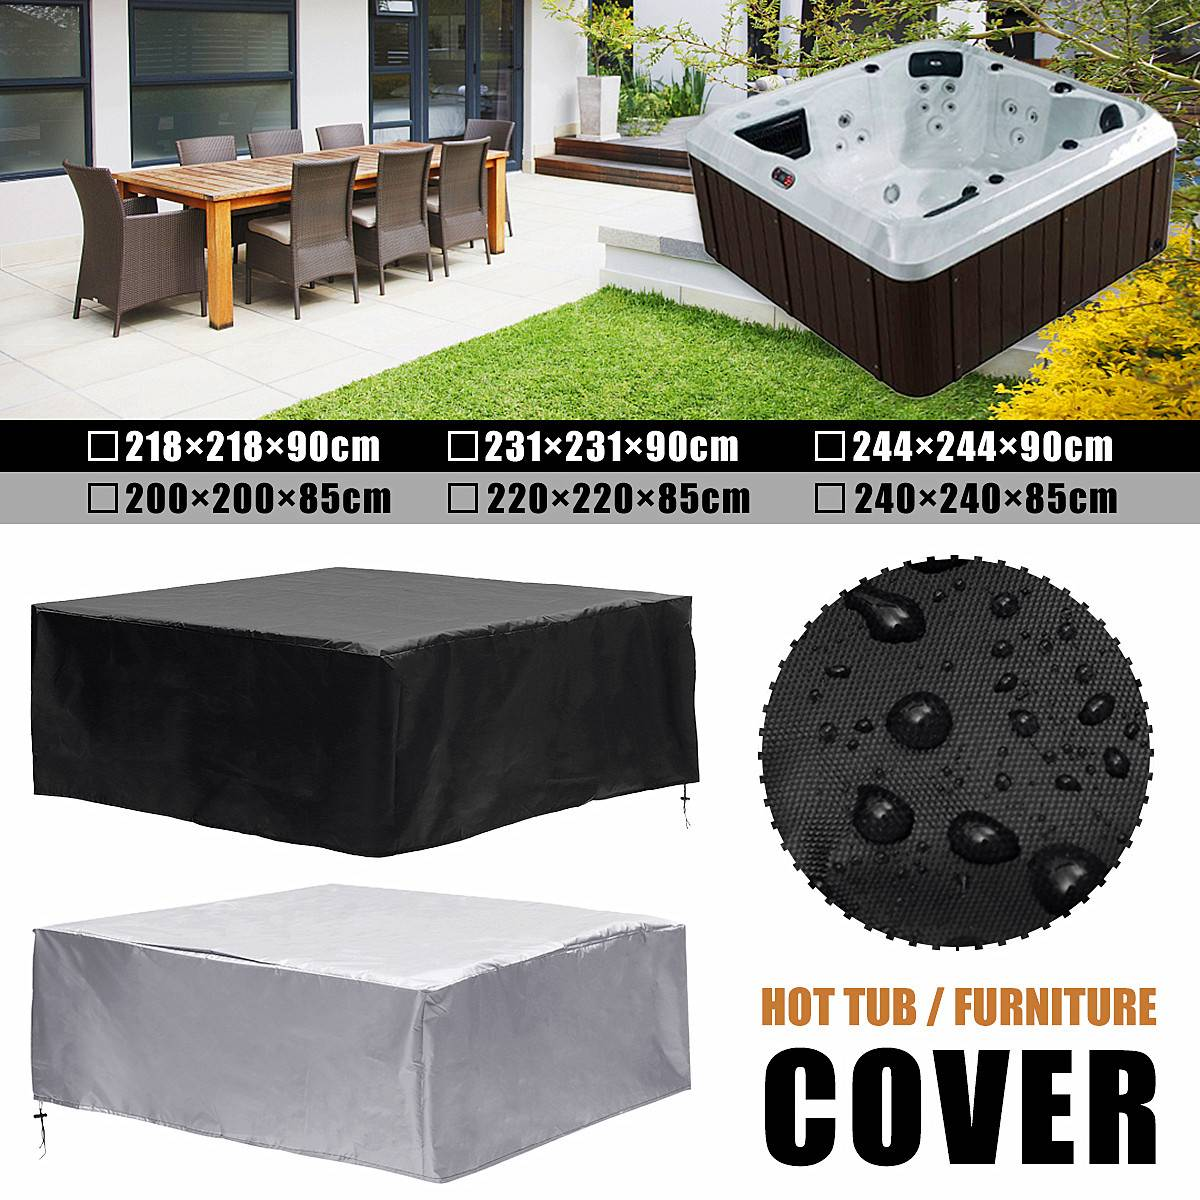 218 231 244 90cm 200 220 240 85cm Hot Tub Dust Cover Durable Anticorrosive Anti uv